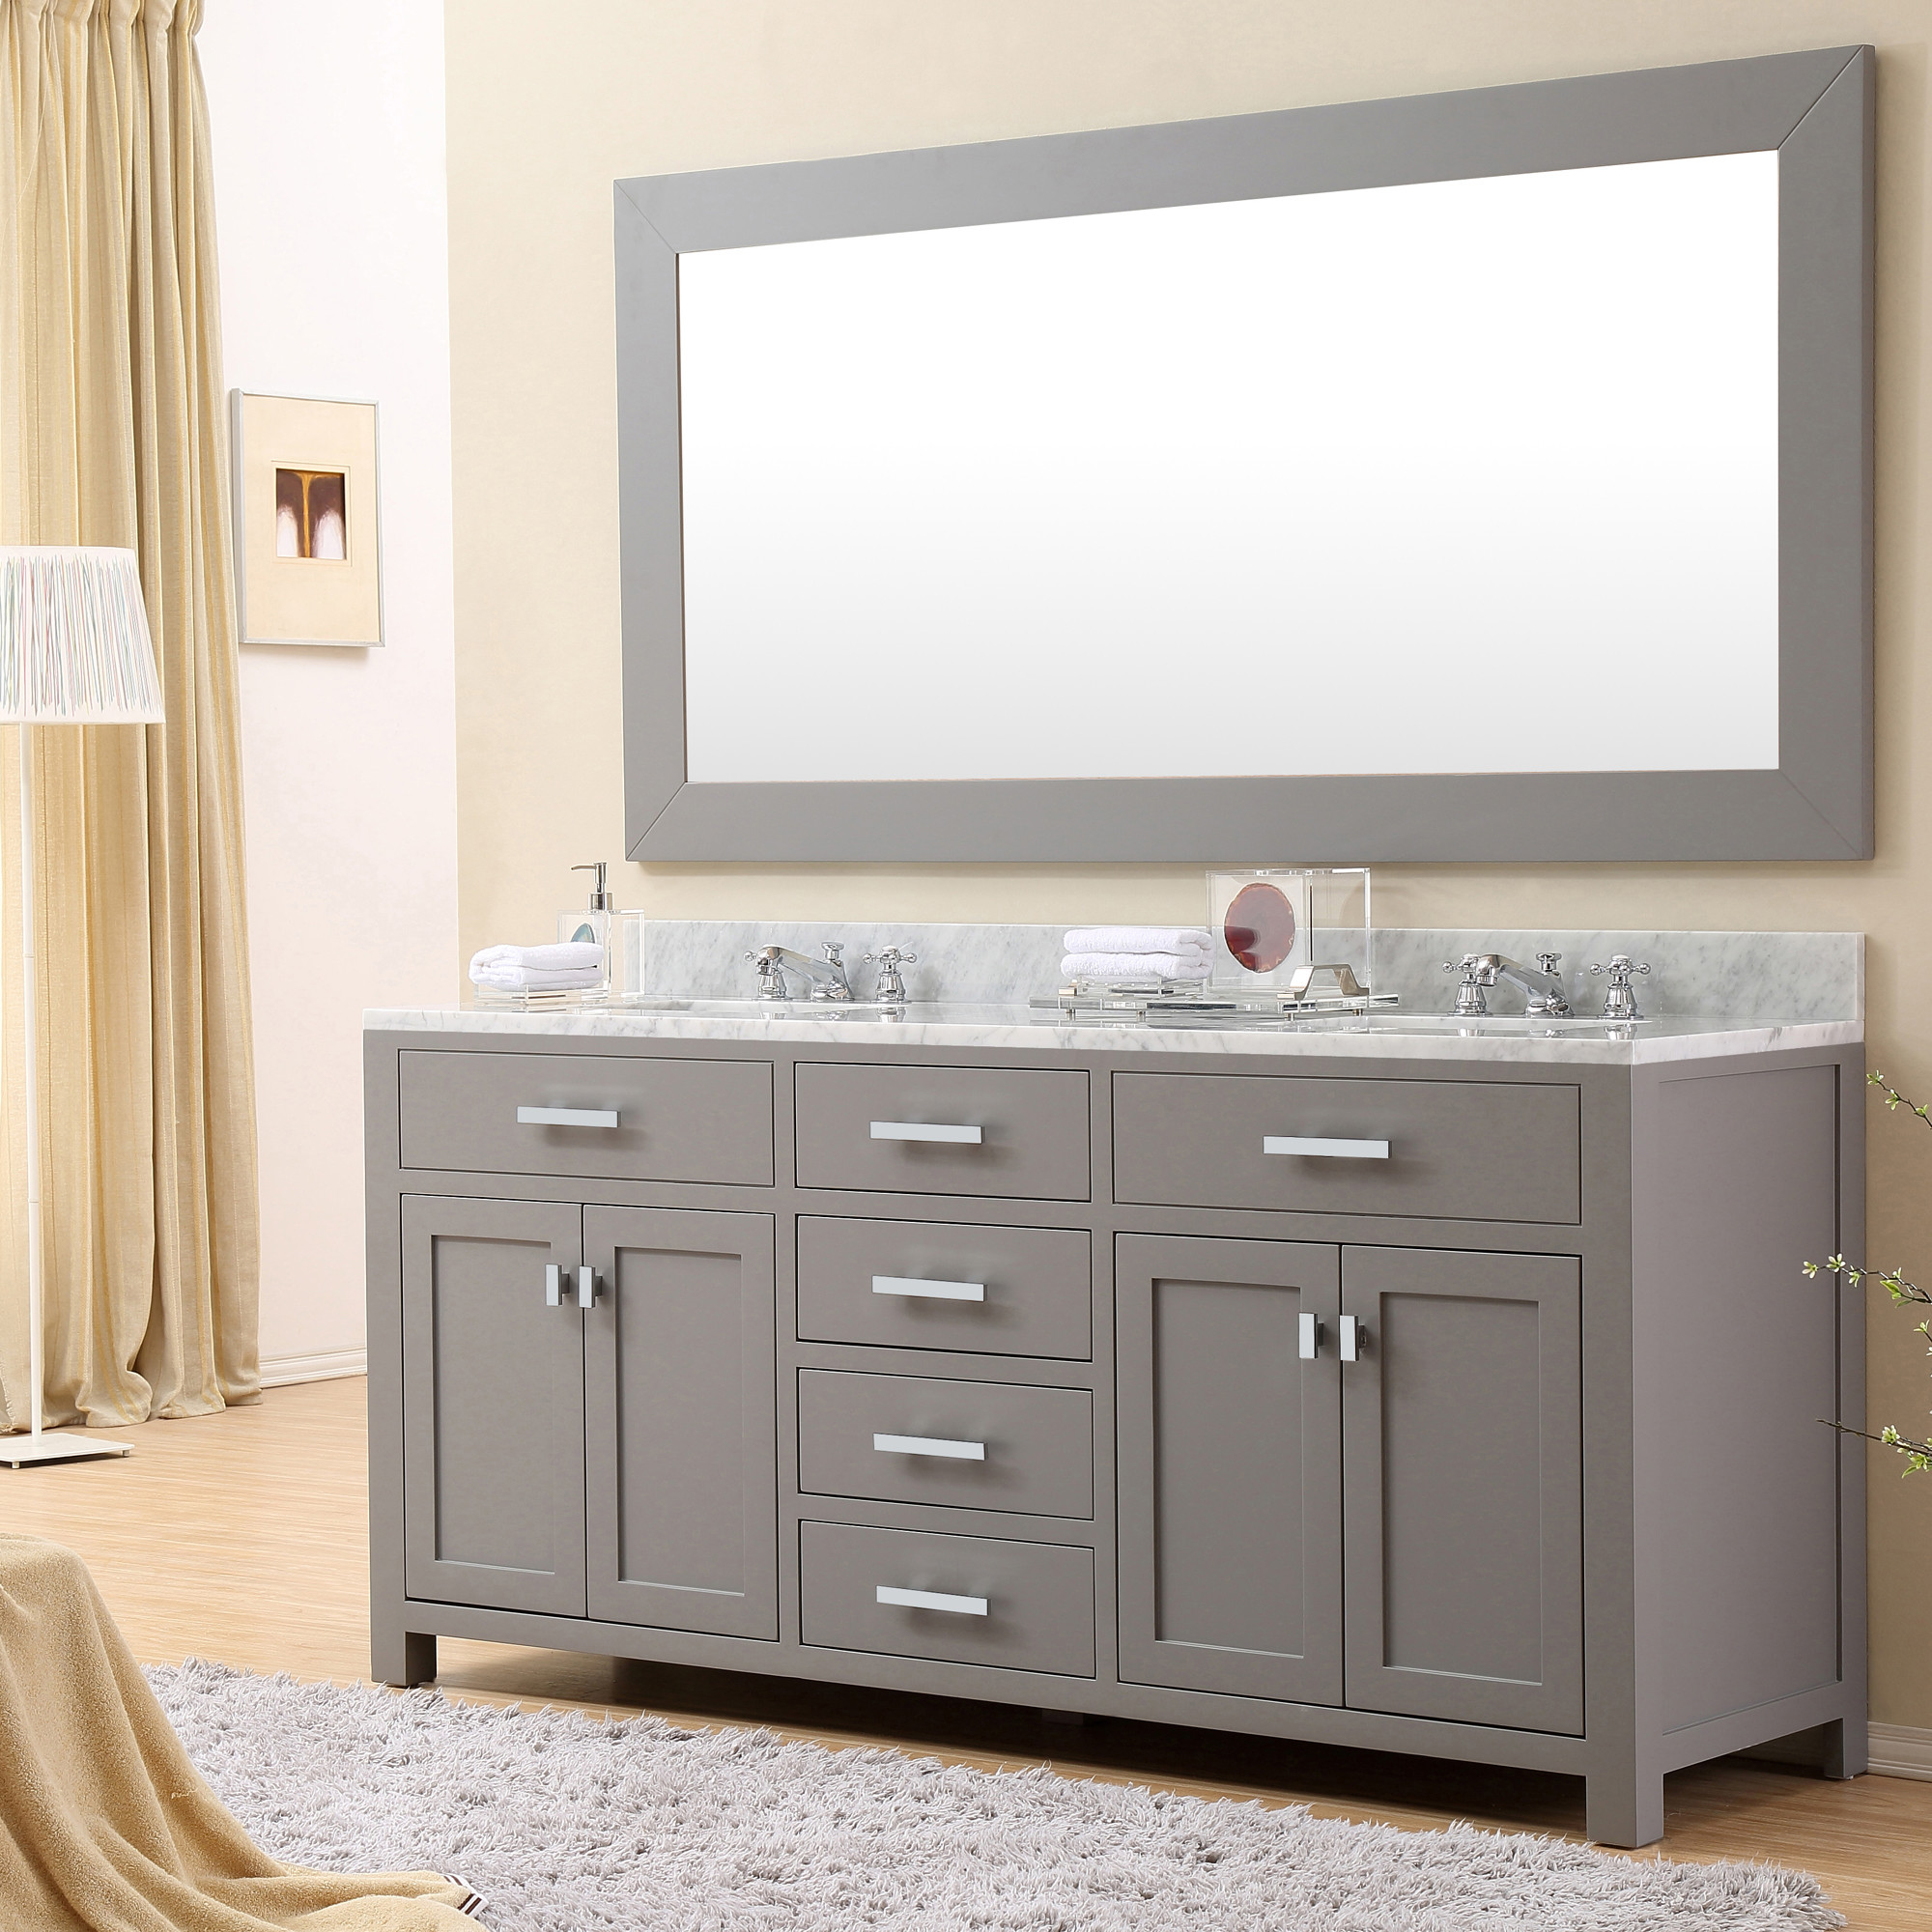 Daston 72 inch gray double sink bathroom vanity carrara white marble top Bathroom cabinets gray